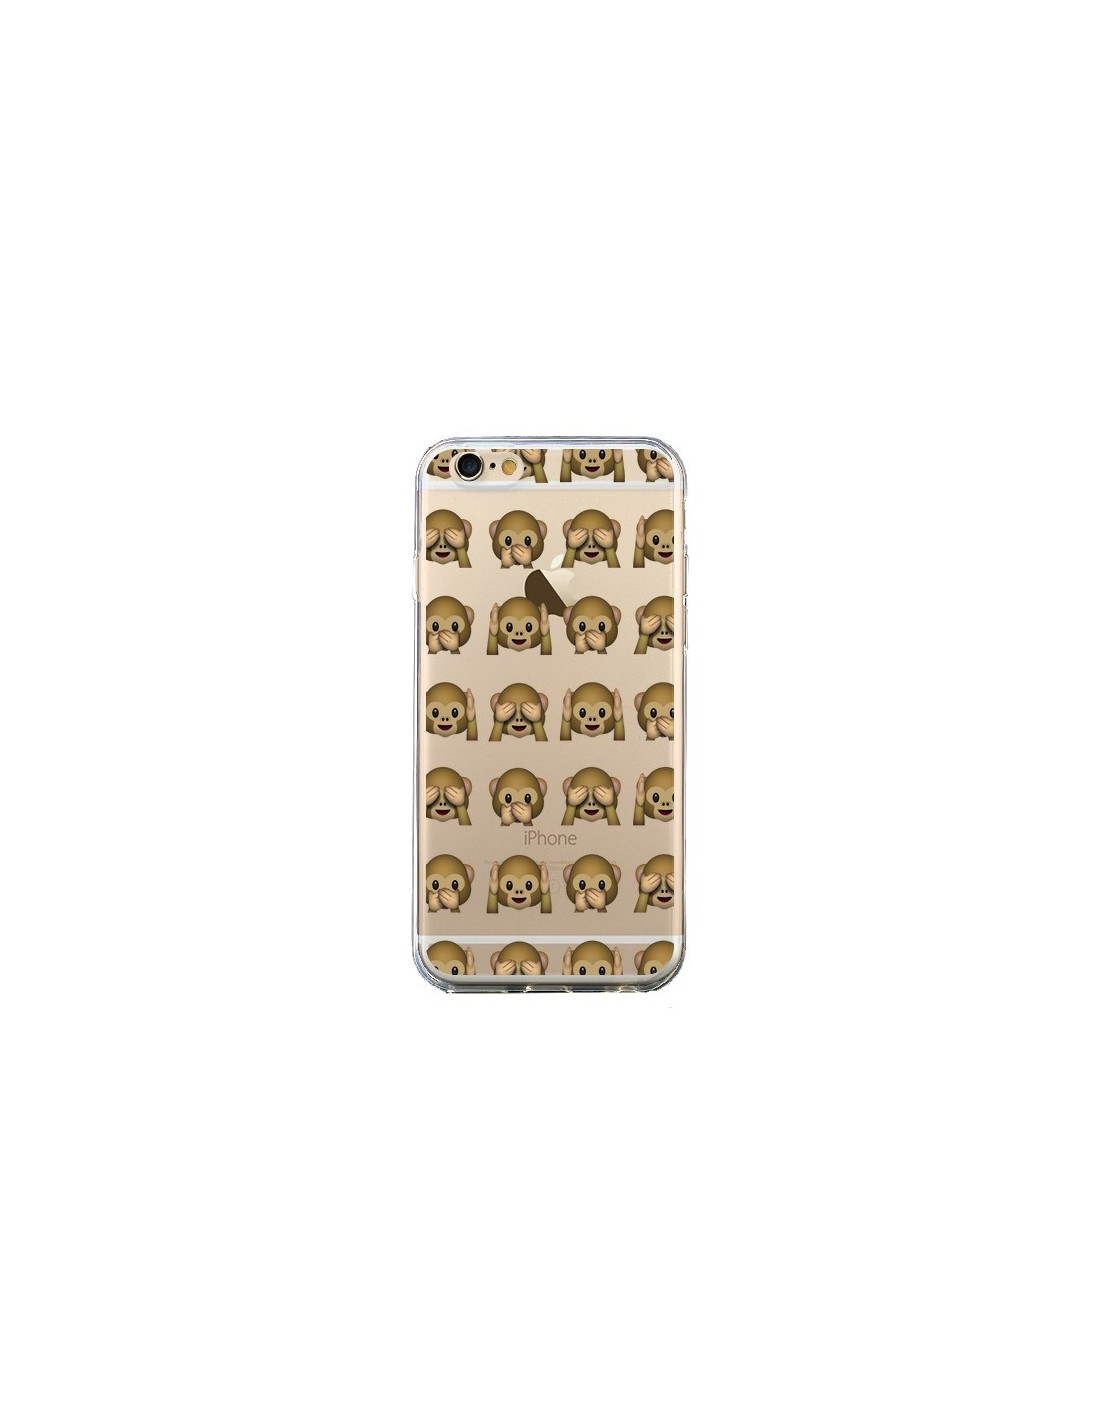 Hervorragend Singe Monkey Emoticone Emoji Transparente pour iPhone 6 et 6S  RN44